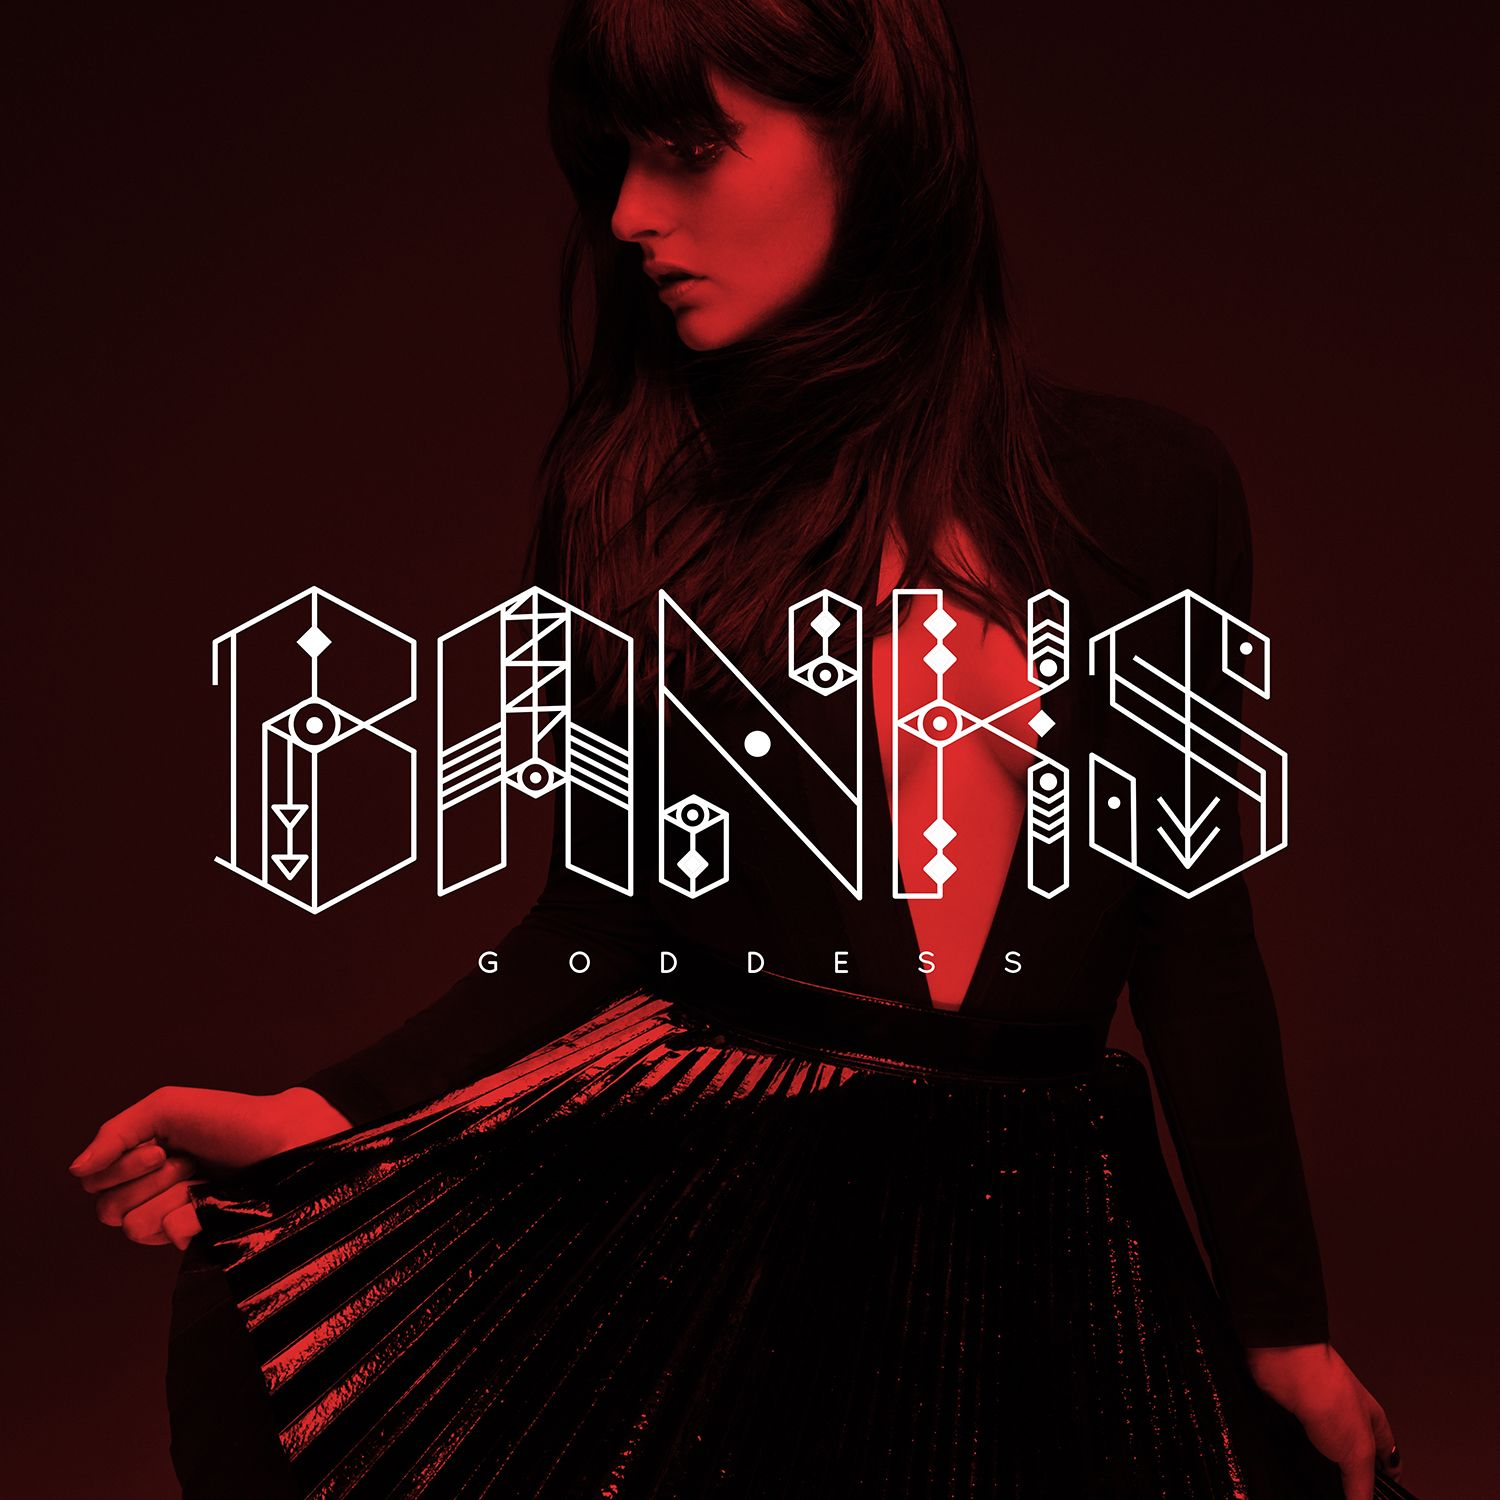 BANKS - Goddess album cover